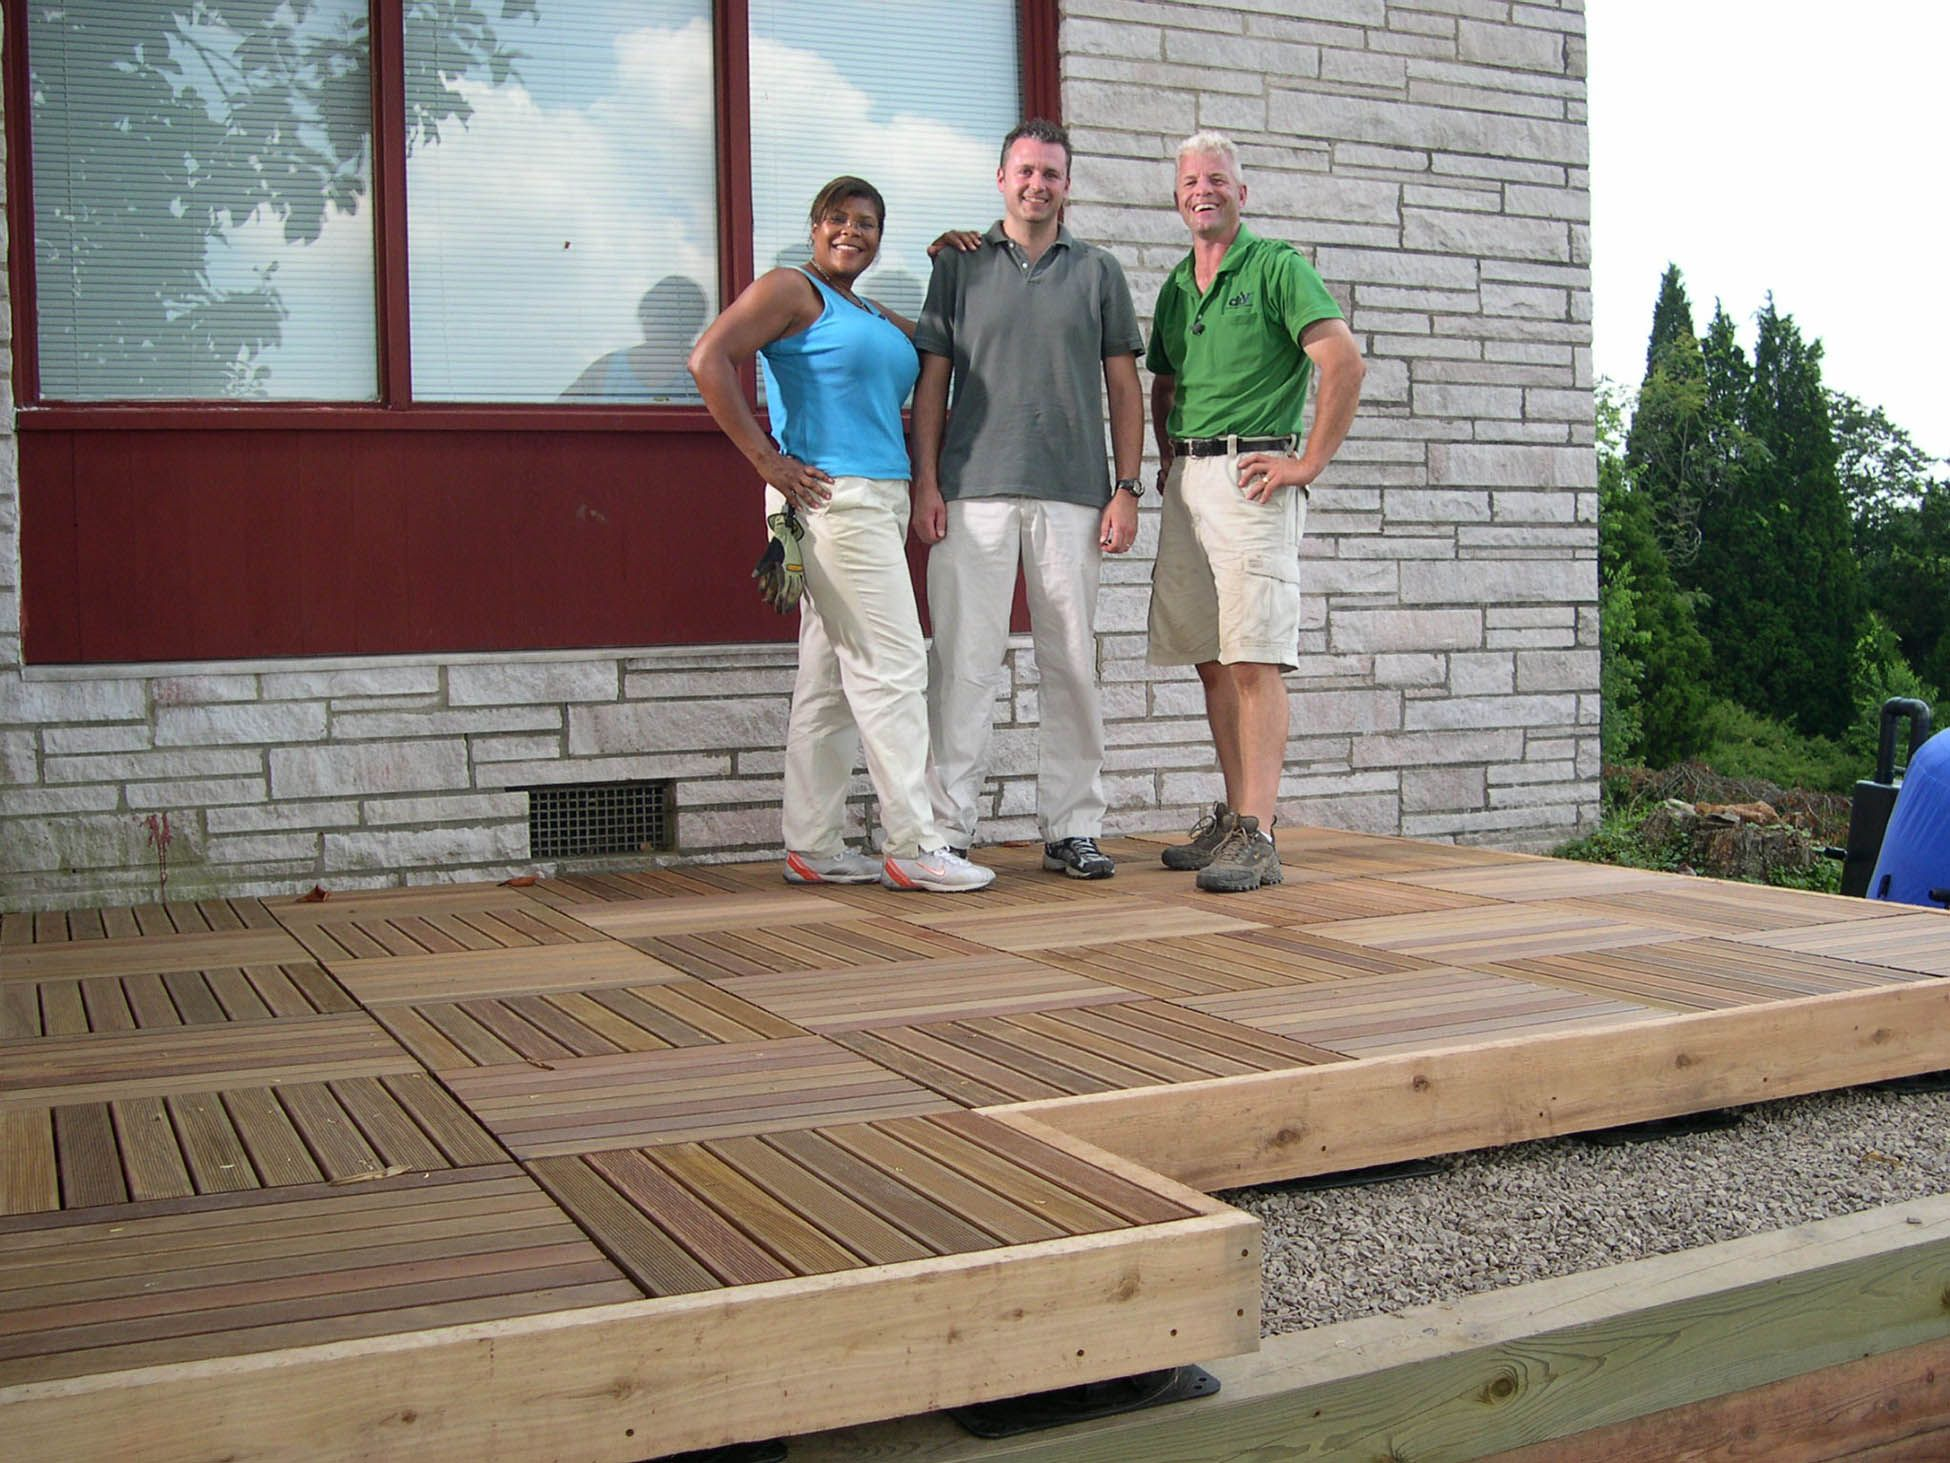 Attractive Bison Level It Deck Support   Tired Of This Artificial Look Of Many Other  Wood Decks On The Market? For Centuries, Wood Has Been The Favored Decking  Materi